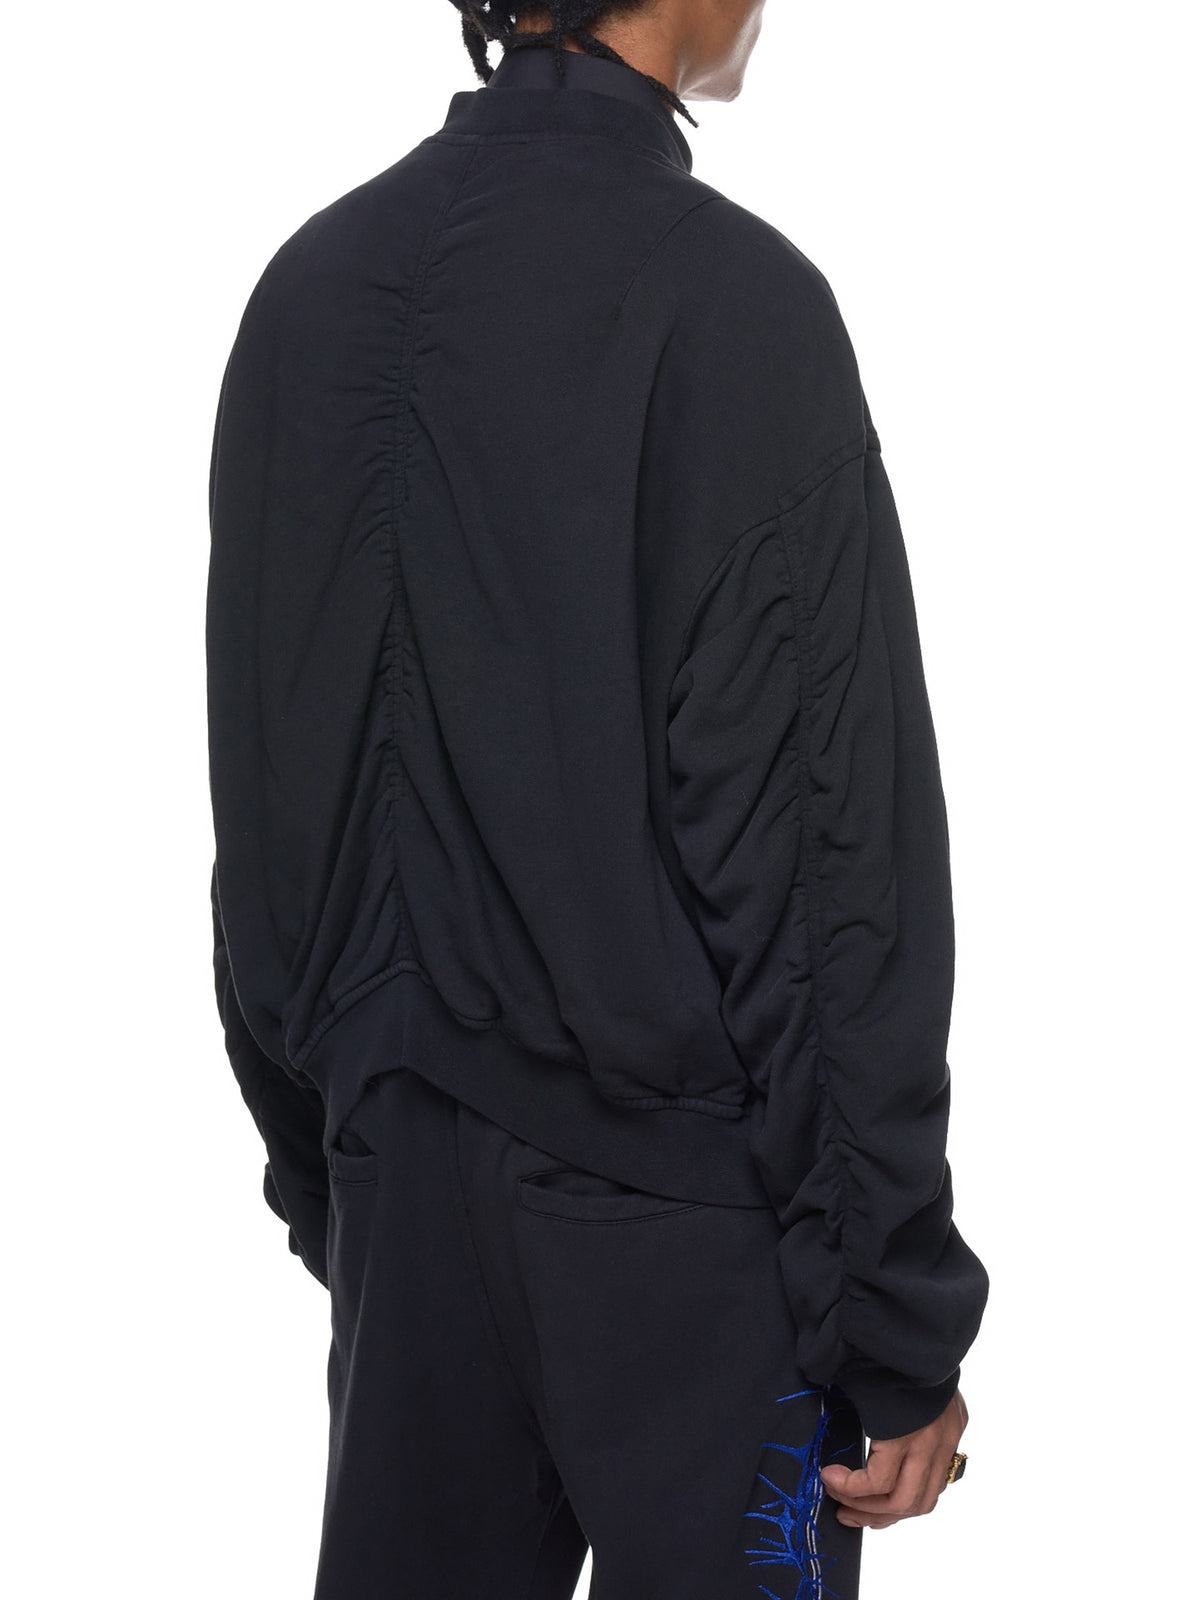 Haider Ackermann Embroidered Bomber - Hlorenzo Detail 2